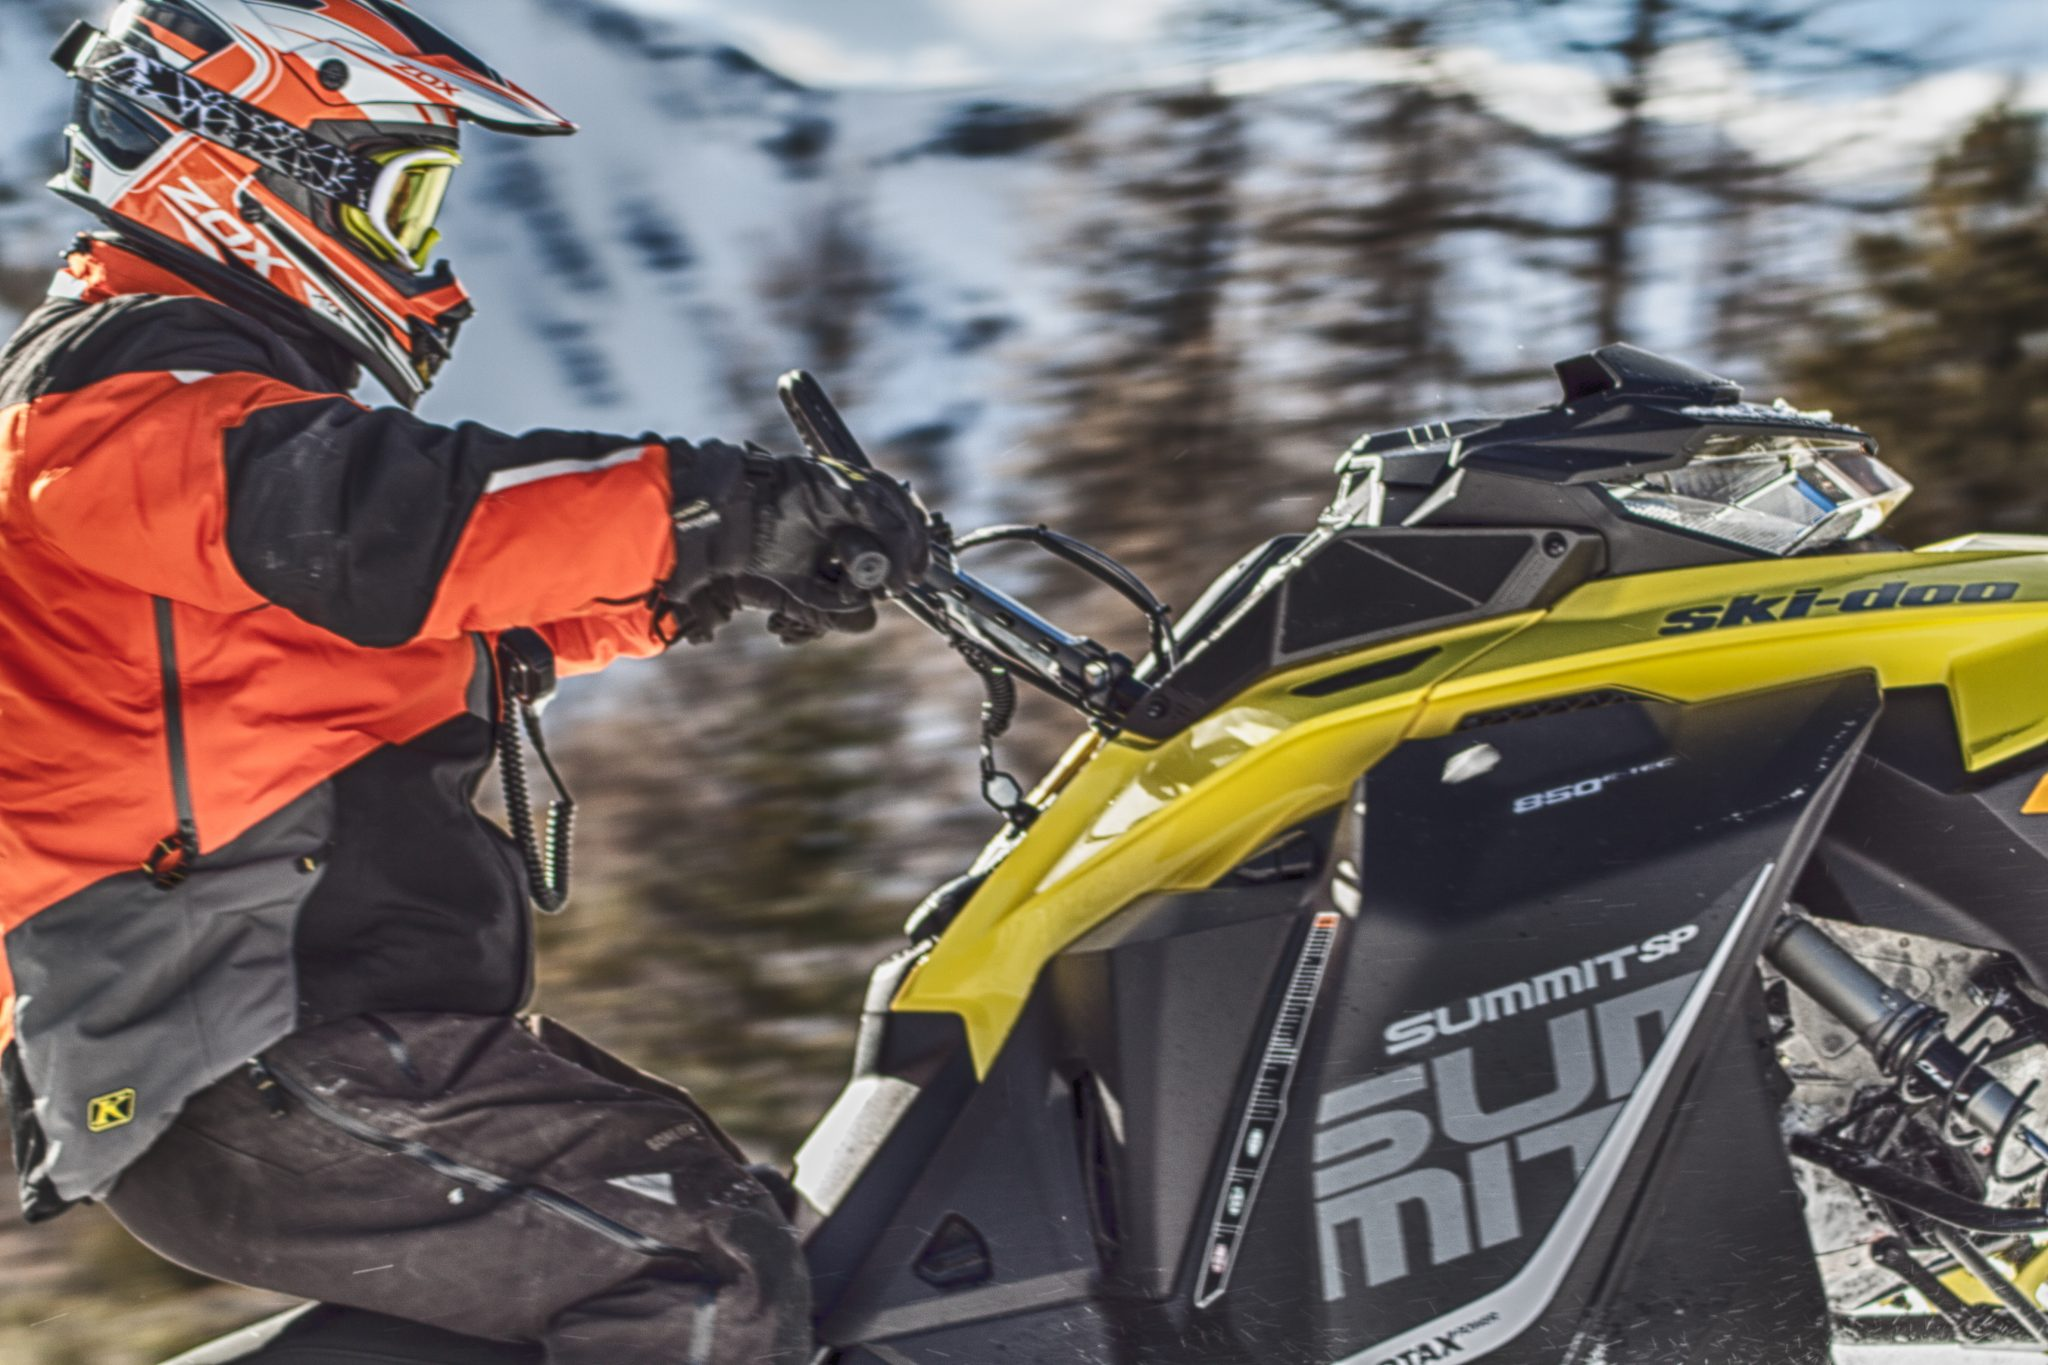 New Ski-Doo Summit SP 850 cc Mountain Sleds